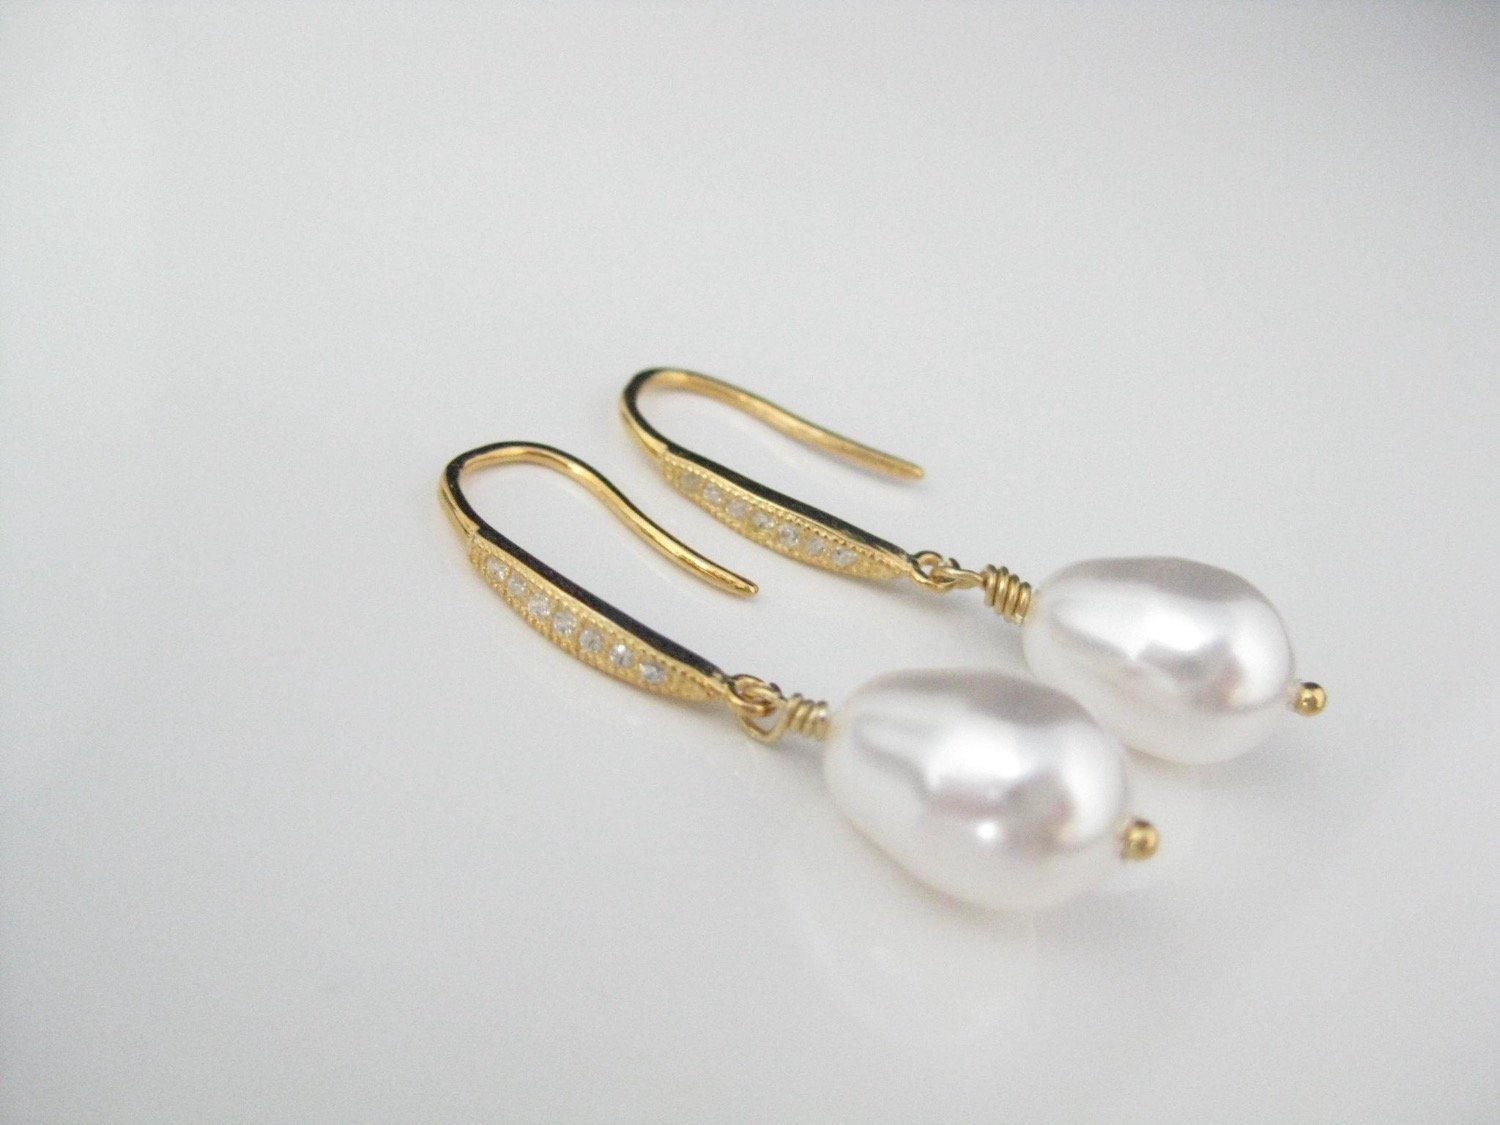 White Pearl Drop Earrings Wedding Jewelry with 14K gold filled on .925 Sterling Silver Cubic Zirconia Ear wires - Clairesbridal - 4